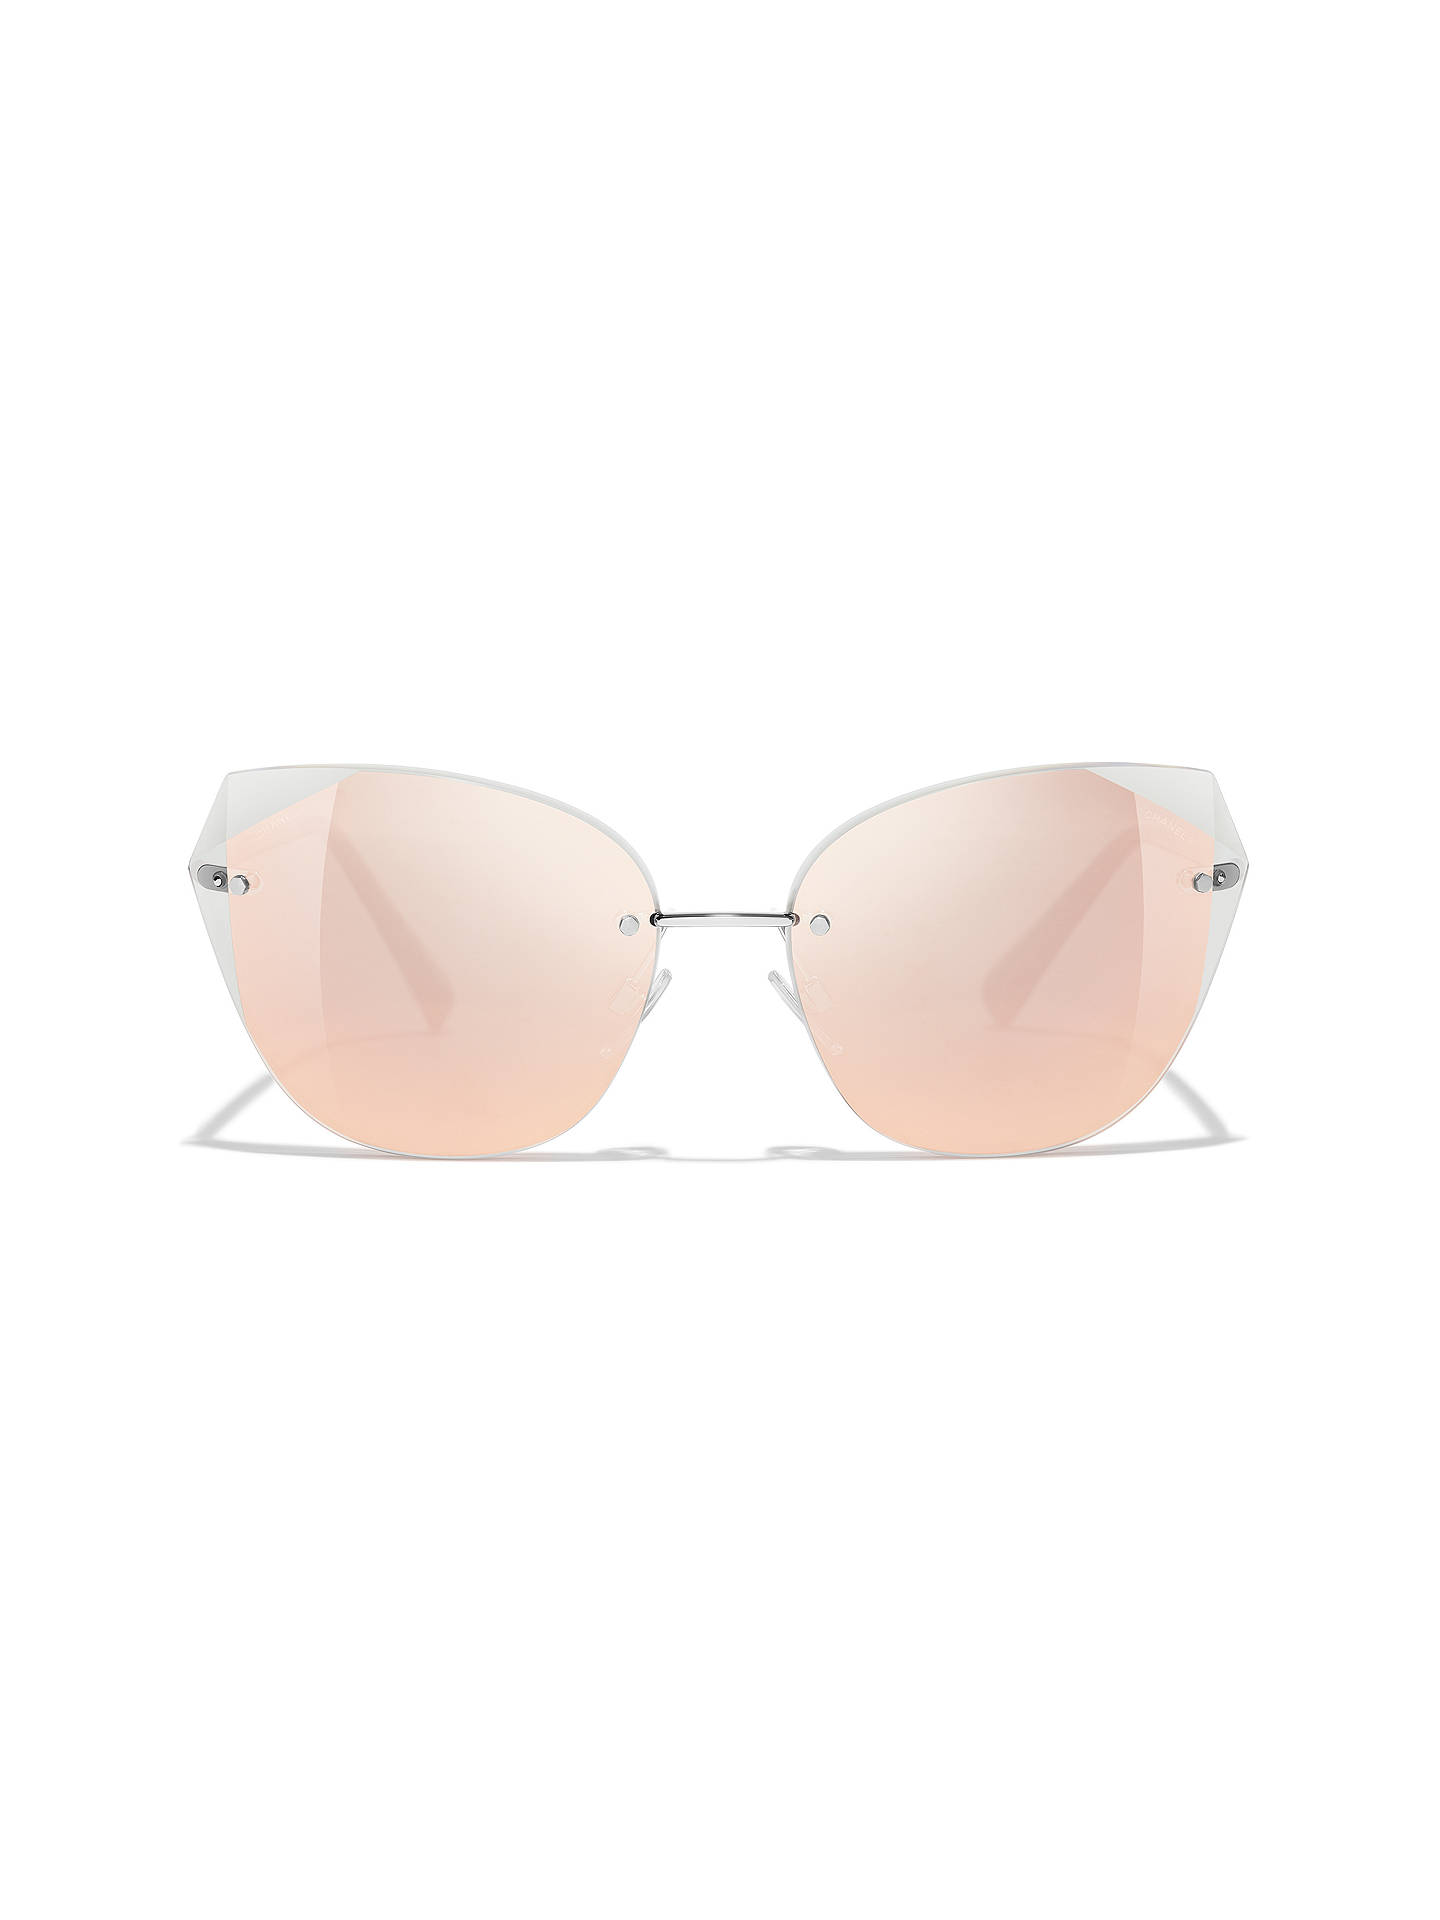 BuyCHANEL Cat Eye Sunglasses CH4237 Silver/Pink Online at johnlewis.com